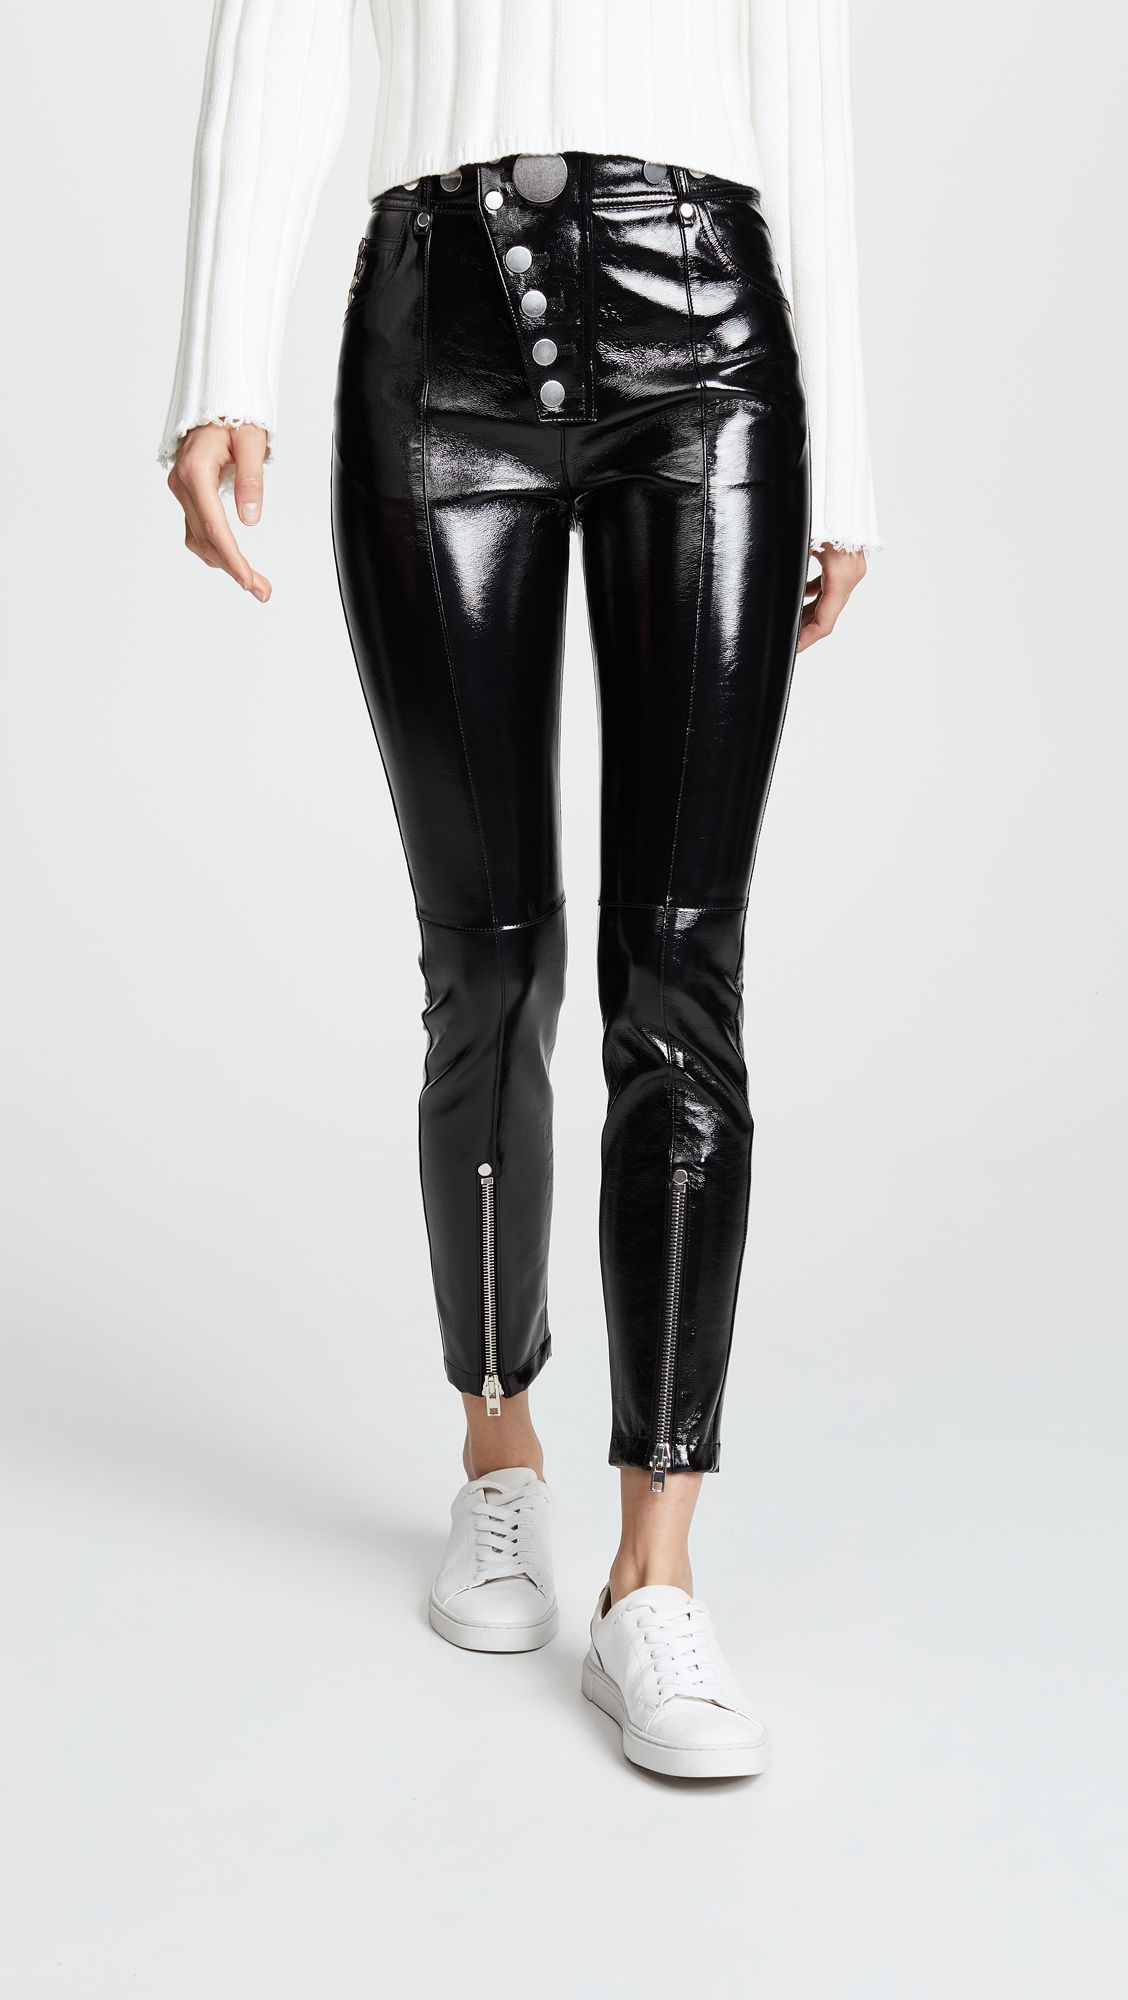 df1447467037c5 Alexander Wang Patent Leather Leggings with Snaps